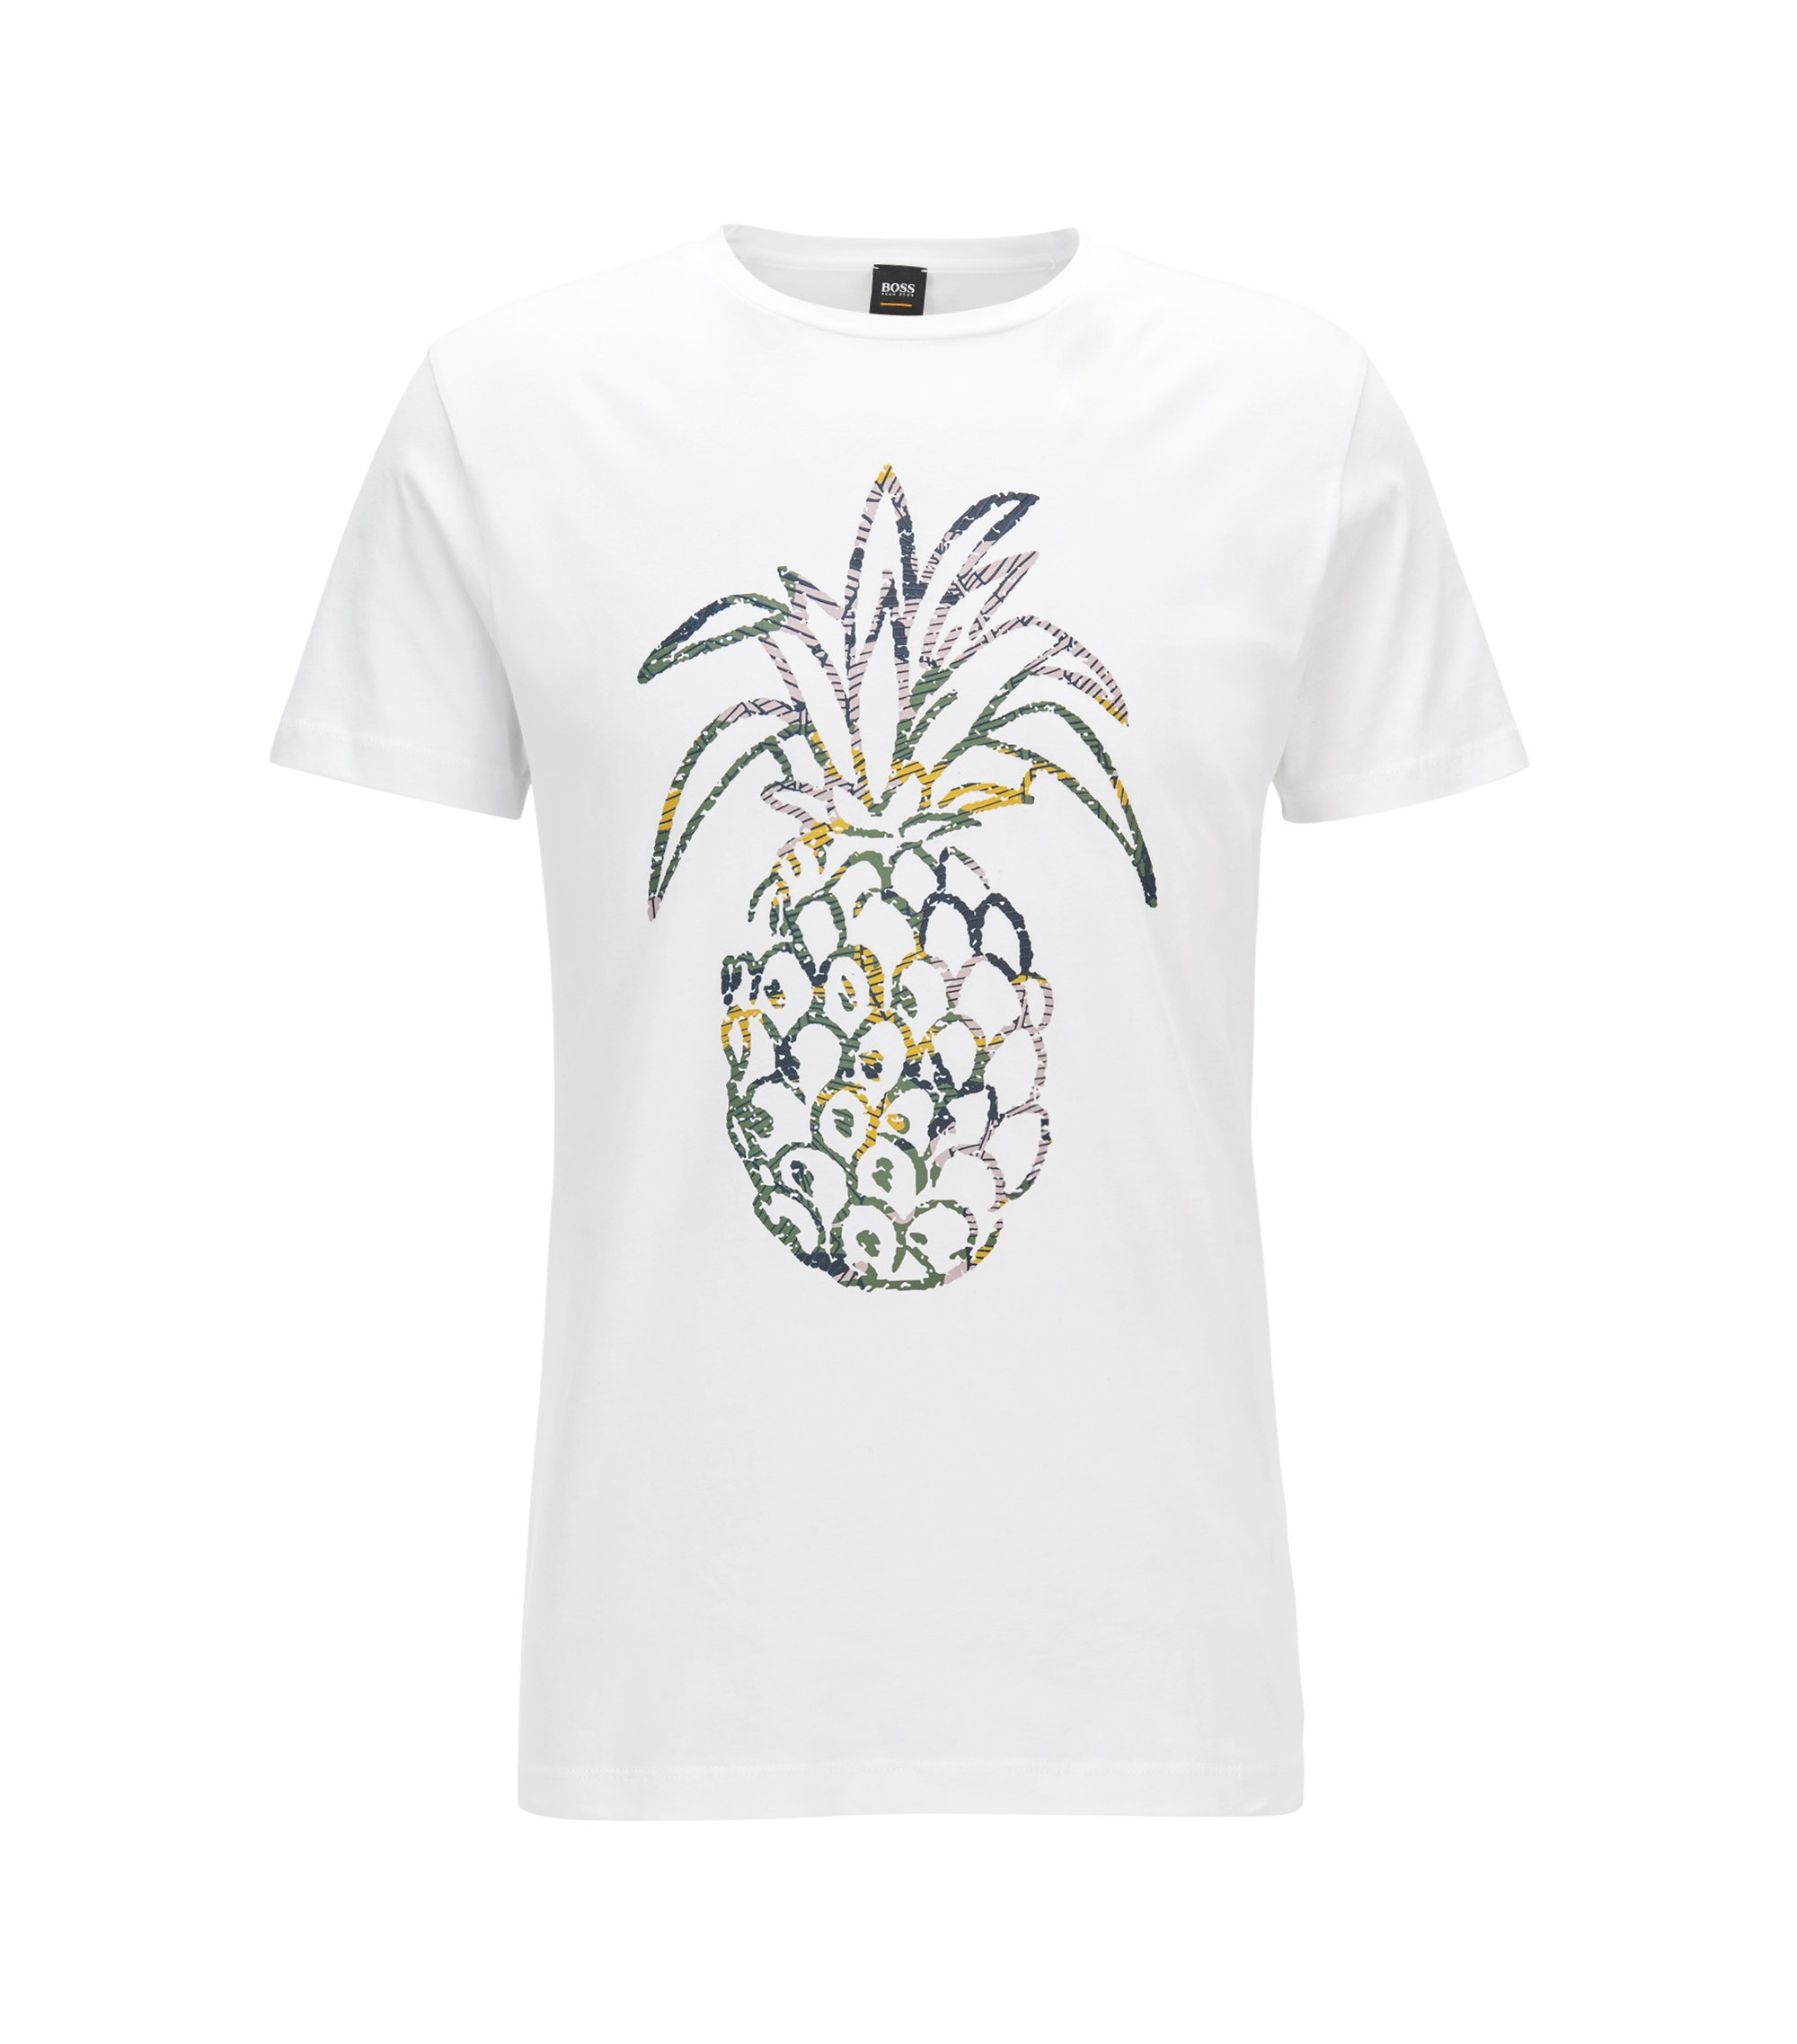 Regular-fit pineapple-print T-shirt in washed cotton jersey, White